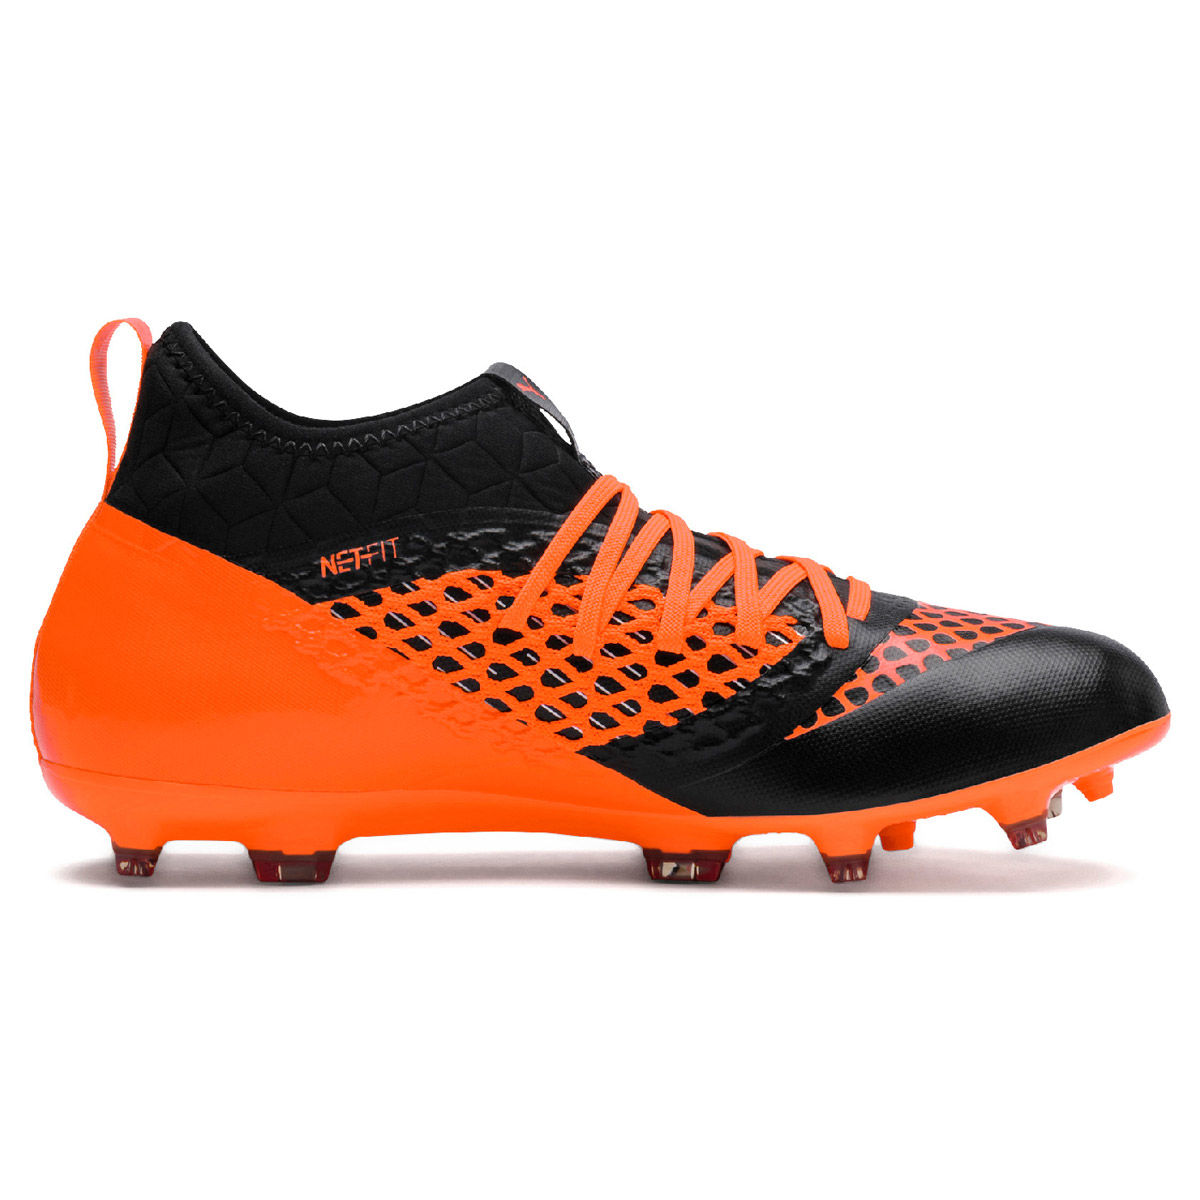 Puma Future 2.3 Mens Firm Ground Soccer Cleat